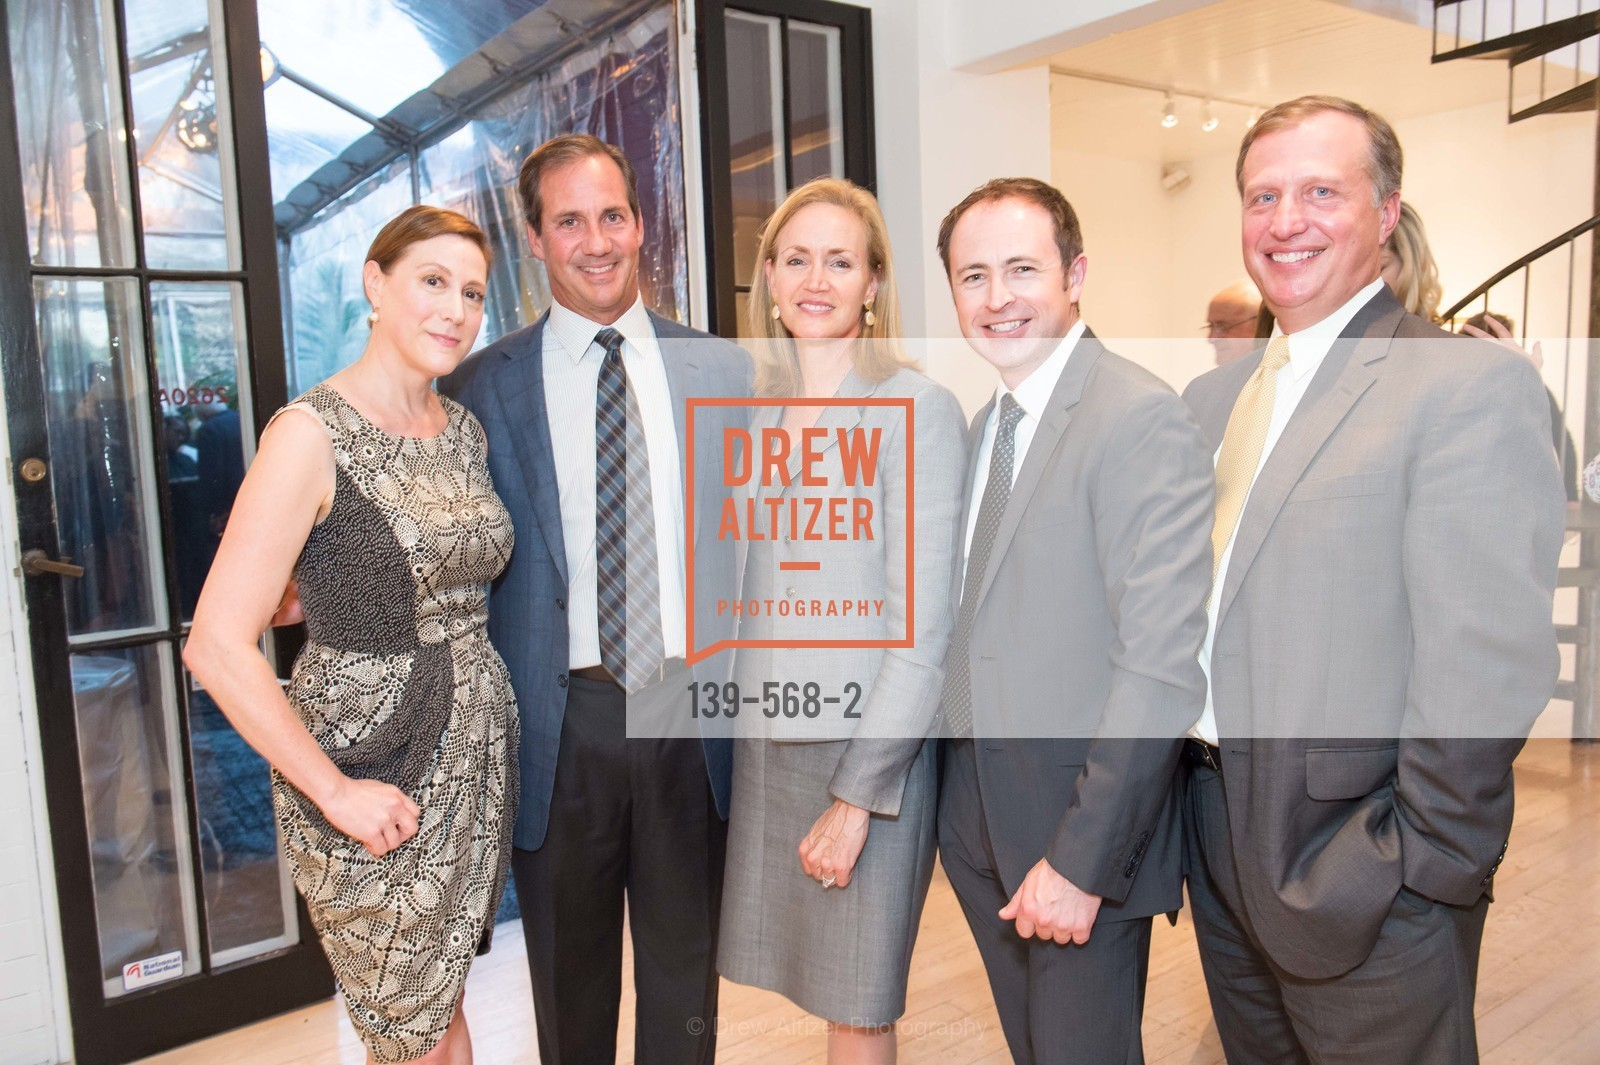 Judith Goldberg, Bob Emery, Dana Emery, Cody Hartley, Robert Kret, SOTHEBY'S  Hosts a Private Viewing of Highlights from the Collection of MRS. PAUL MELLON, US, September 17th, 2014,Drew Altizer, Drew Altizer Photography, full-service agency, private events, San Francisco photographer, photographer california